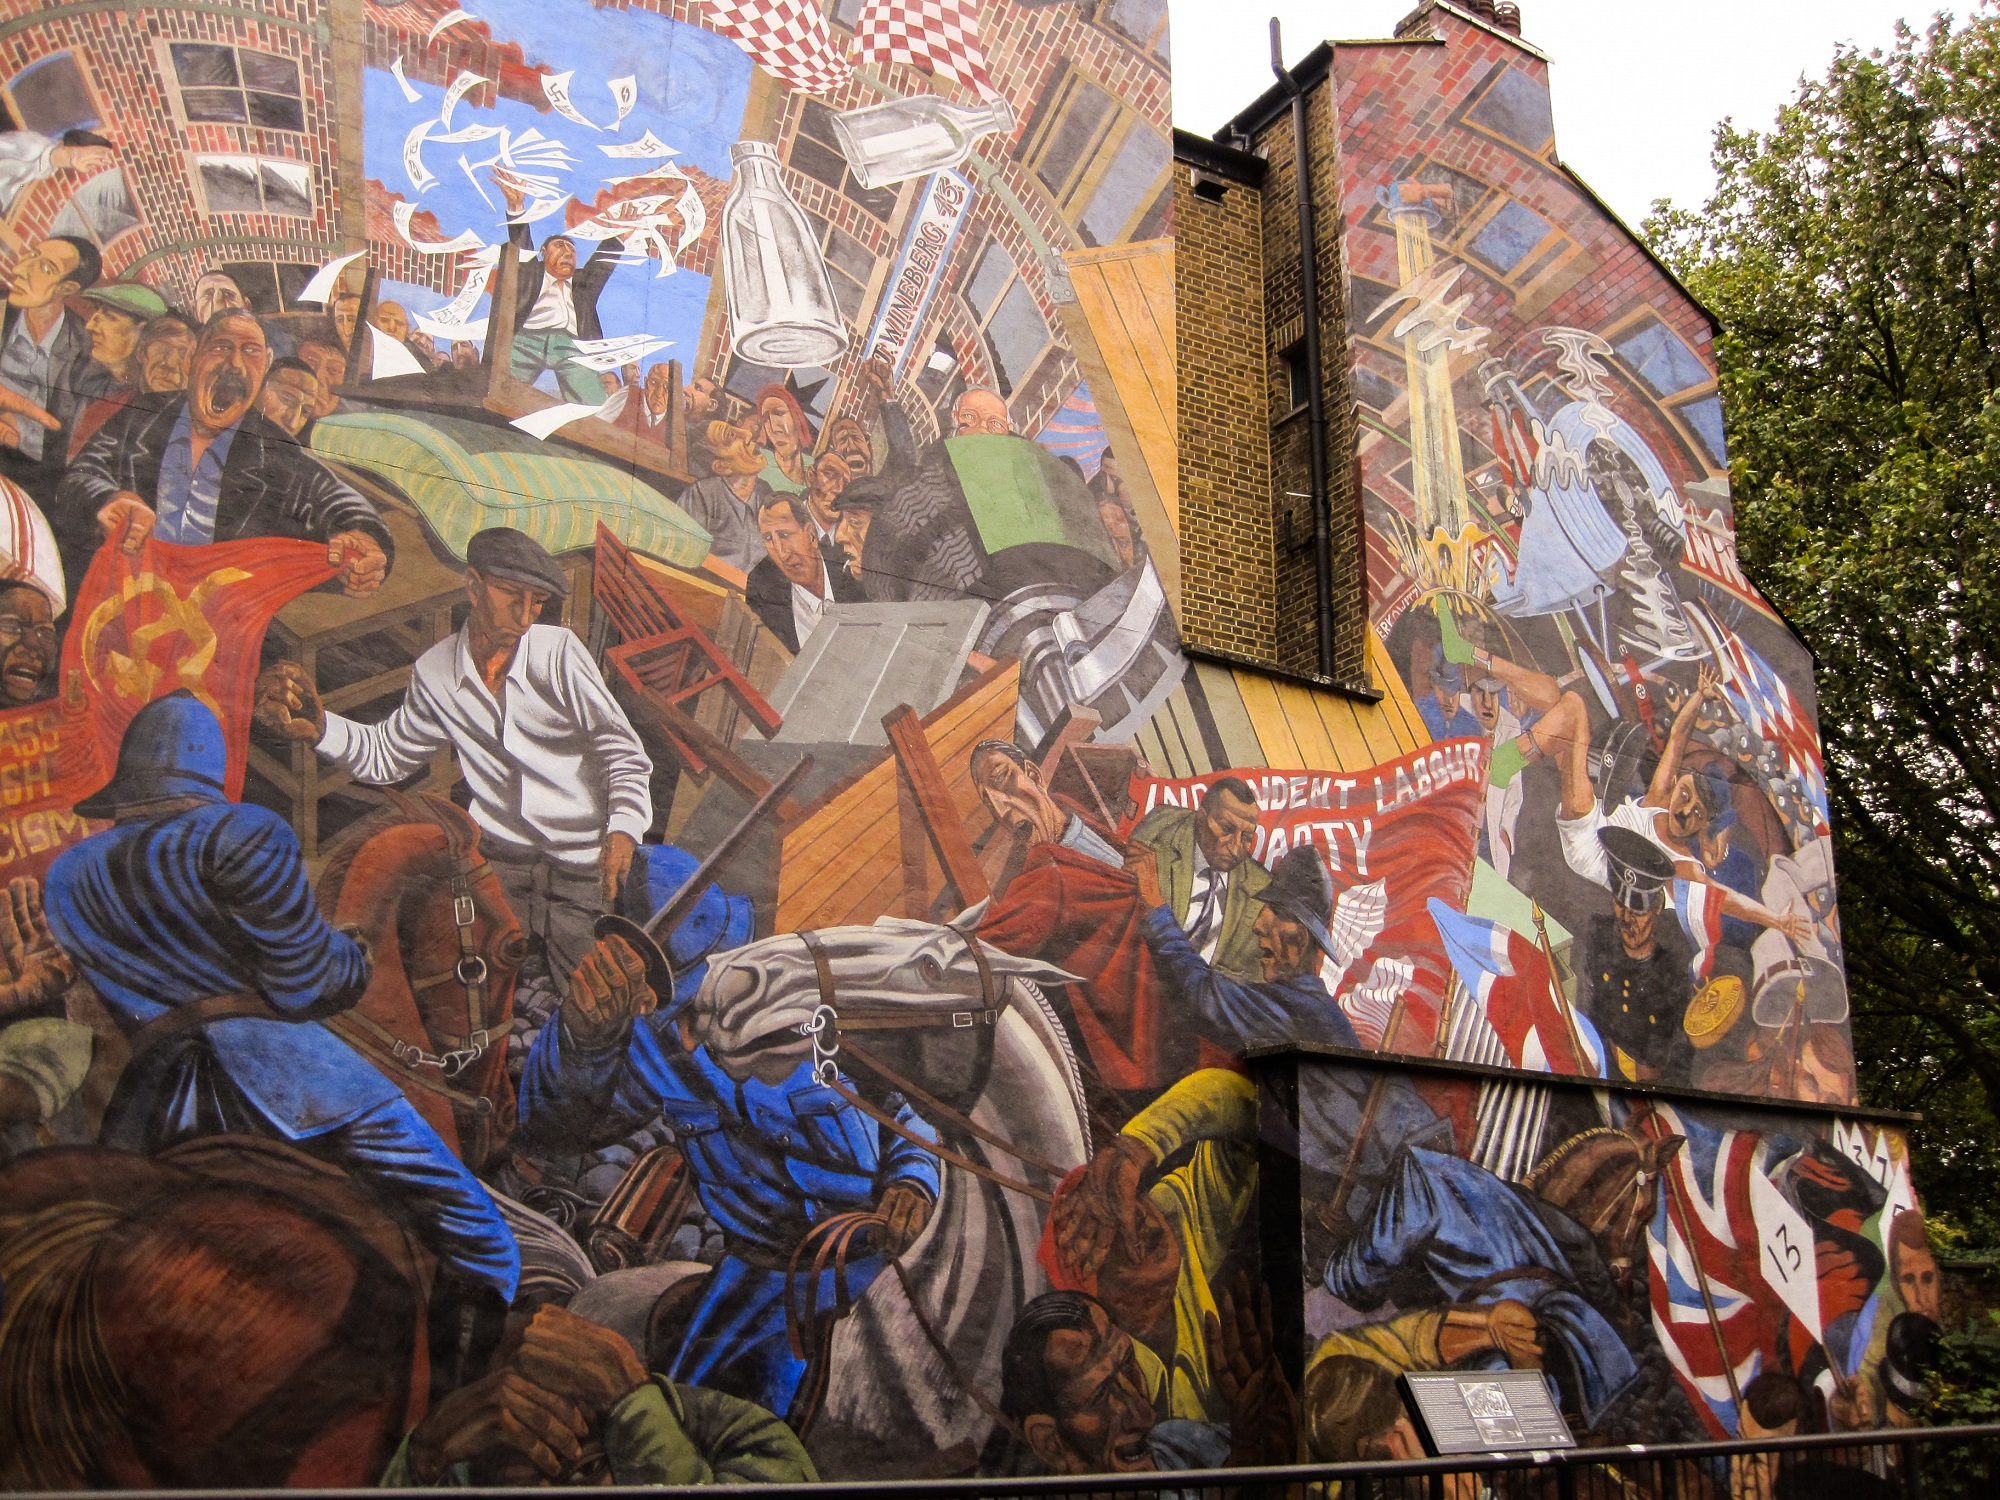 They shall not pass fighting the fascists on the battle for Cable street mural